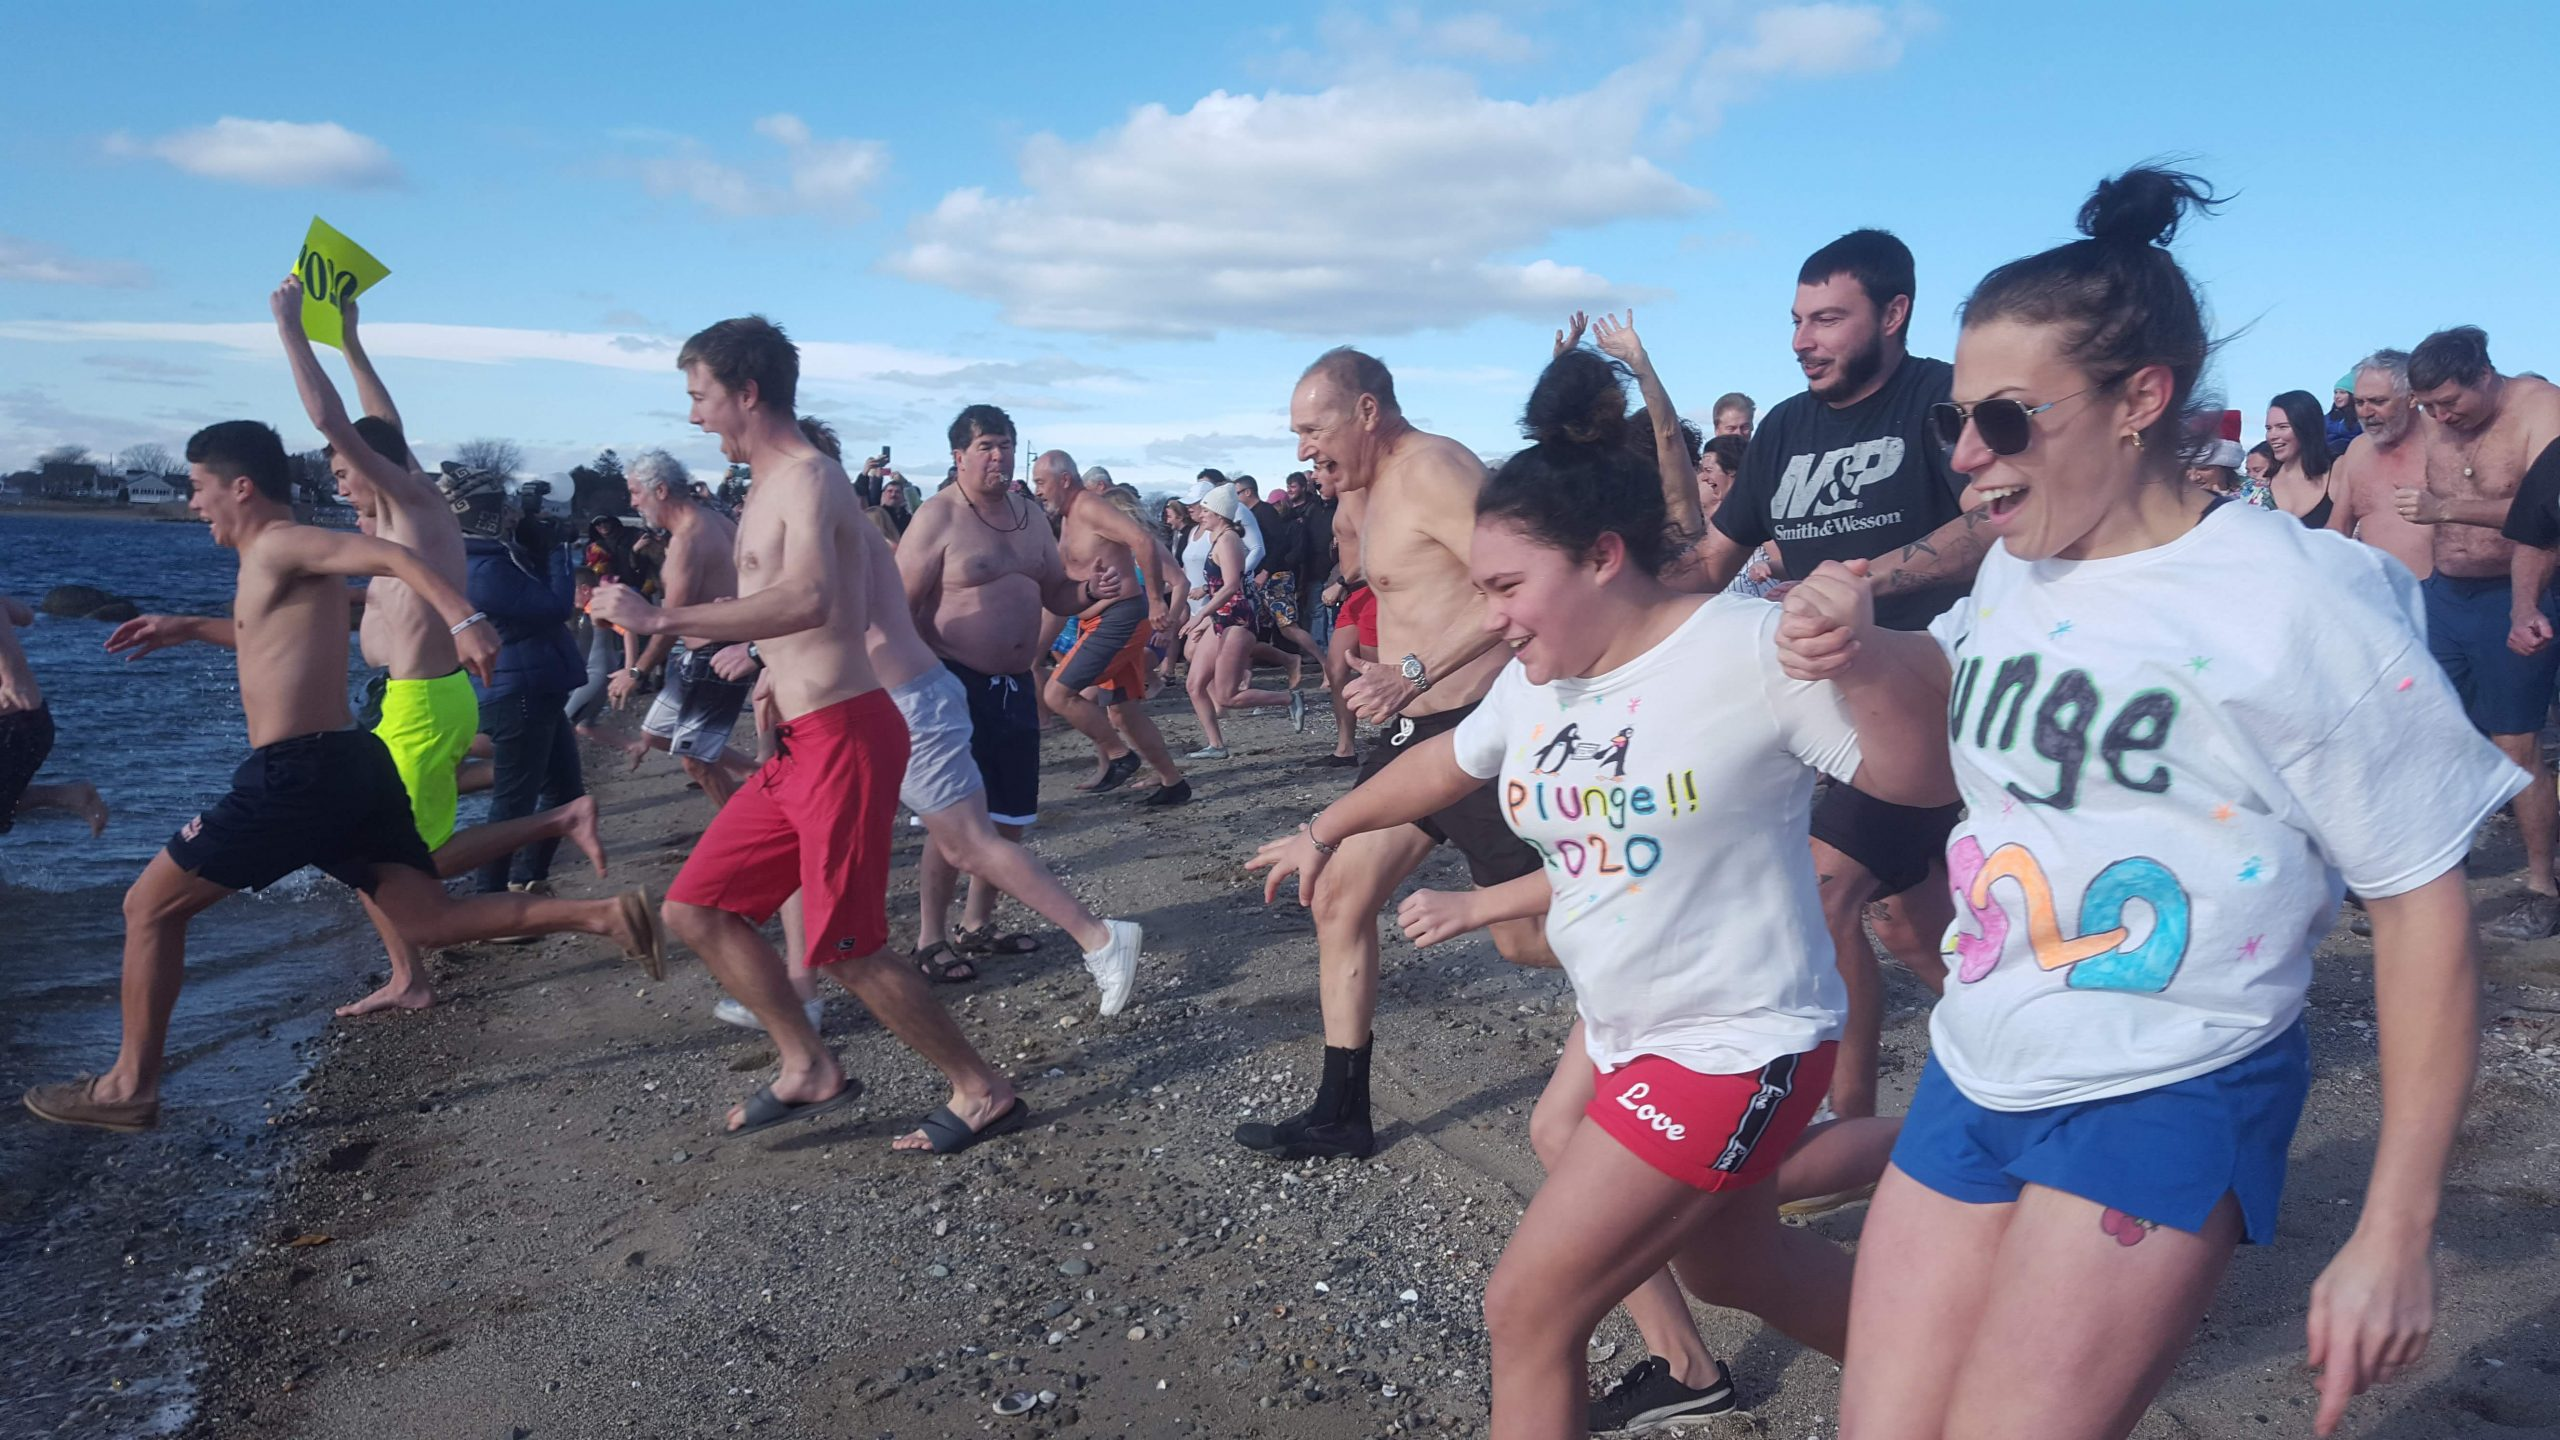 polar plunge people running into water